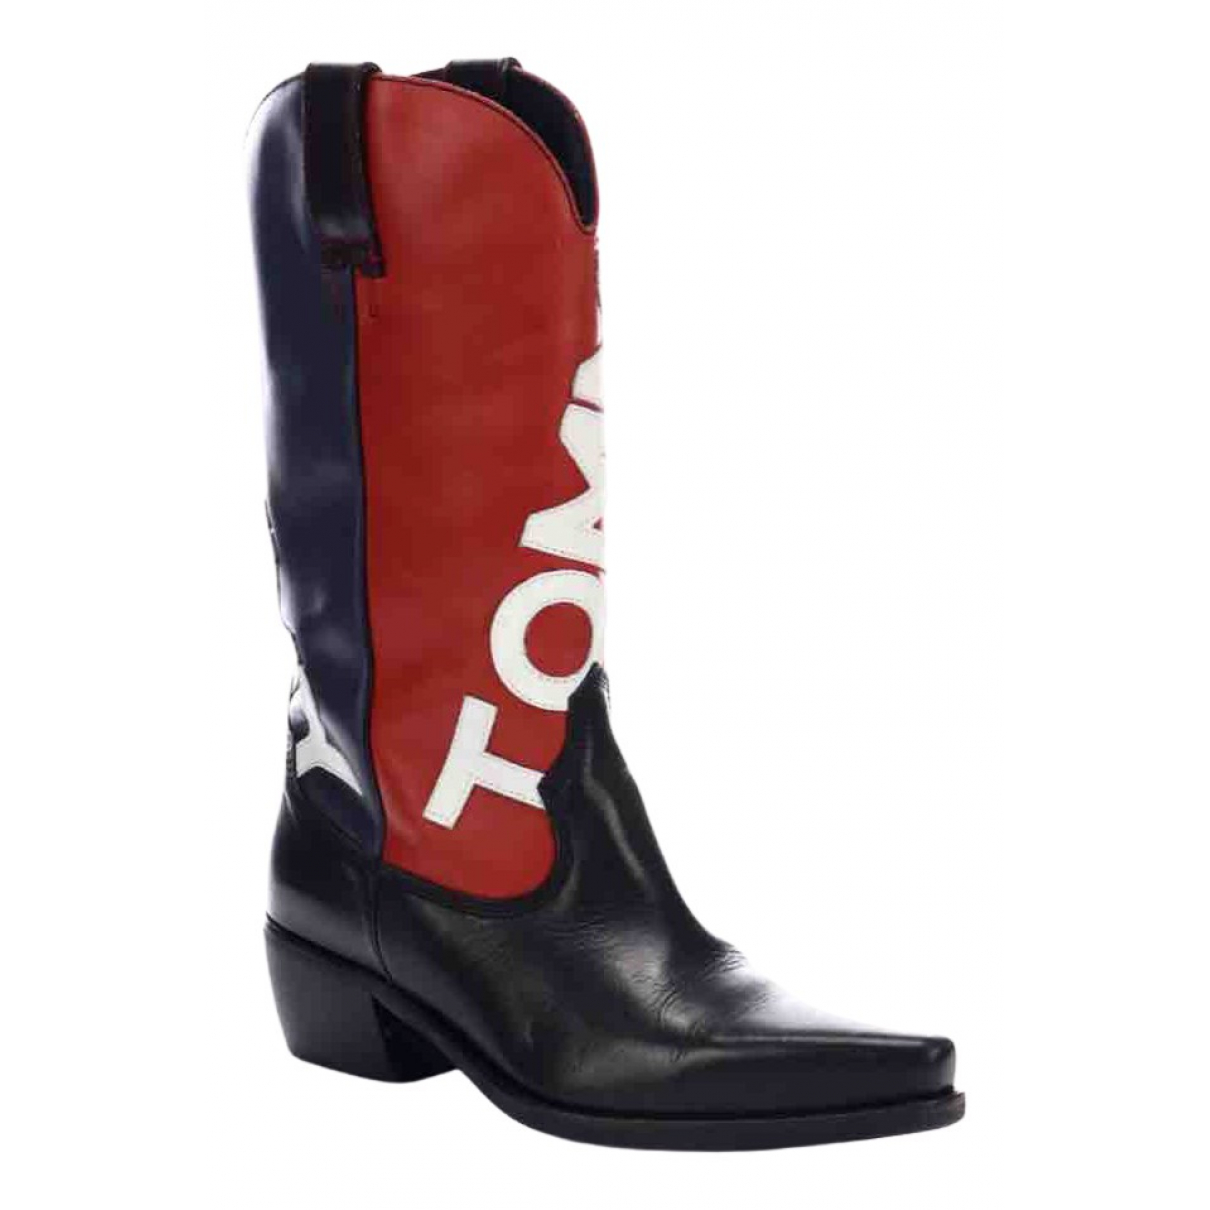 Tommy Hilfiger N Multicolour Leather Boots for Women 39 EU